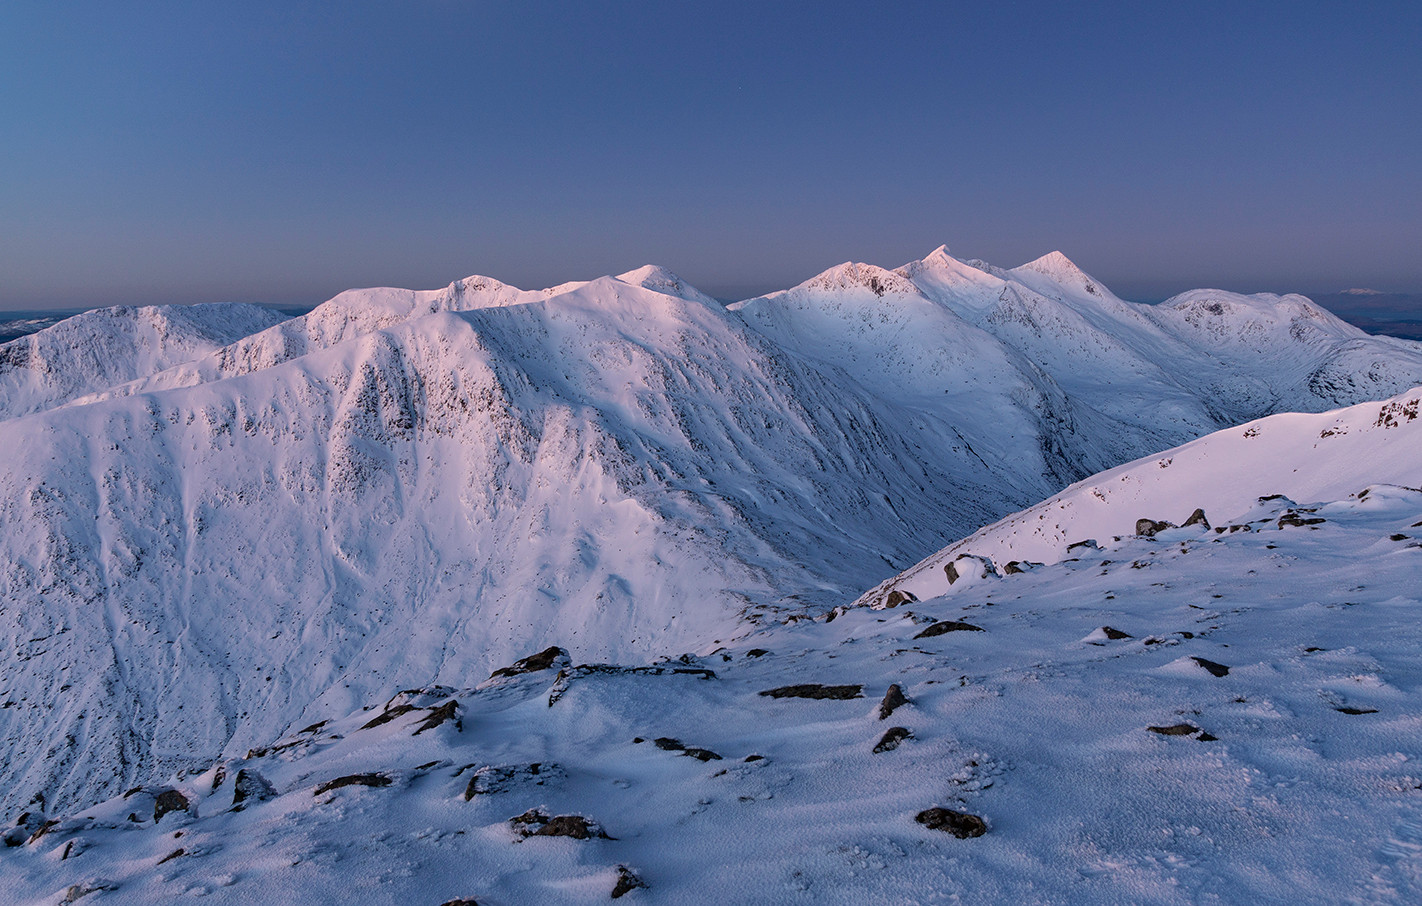 The Cruachan Ridge